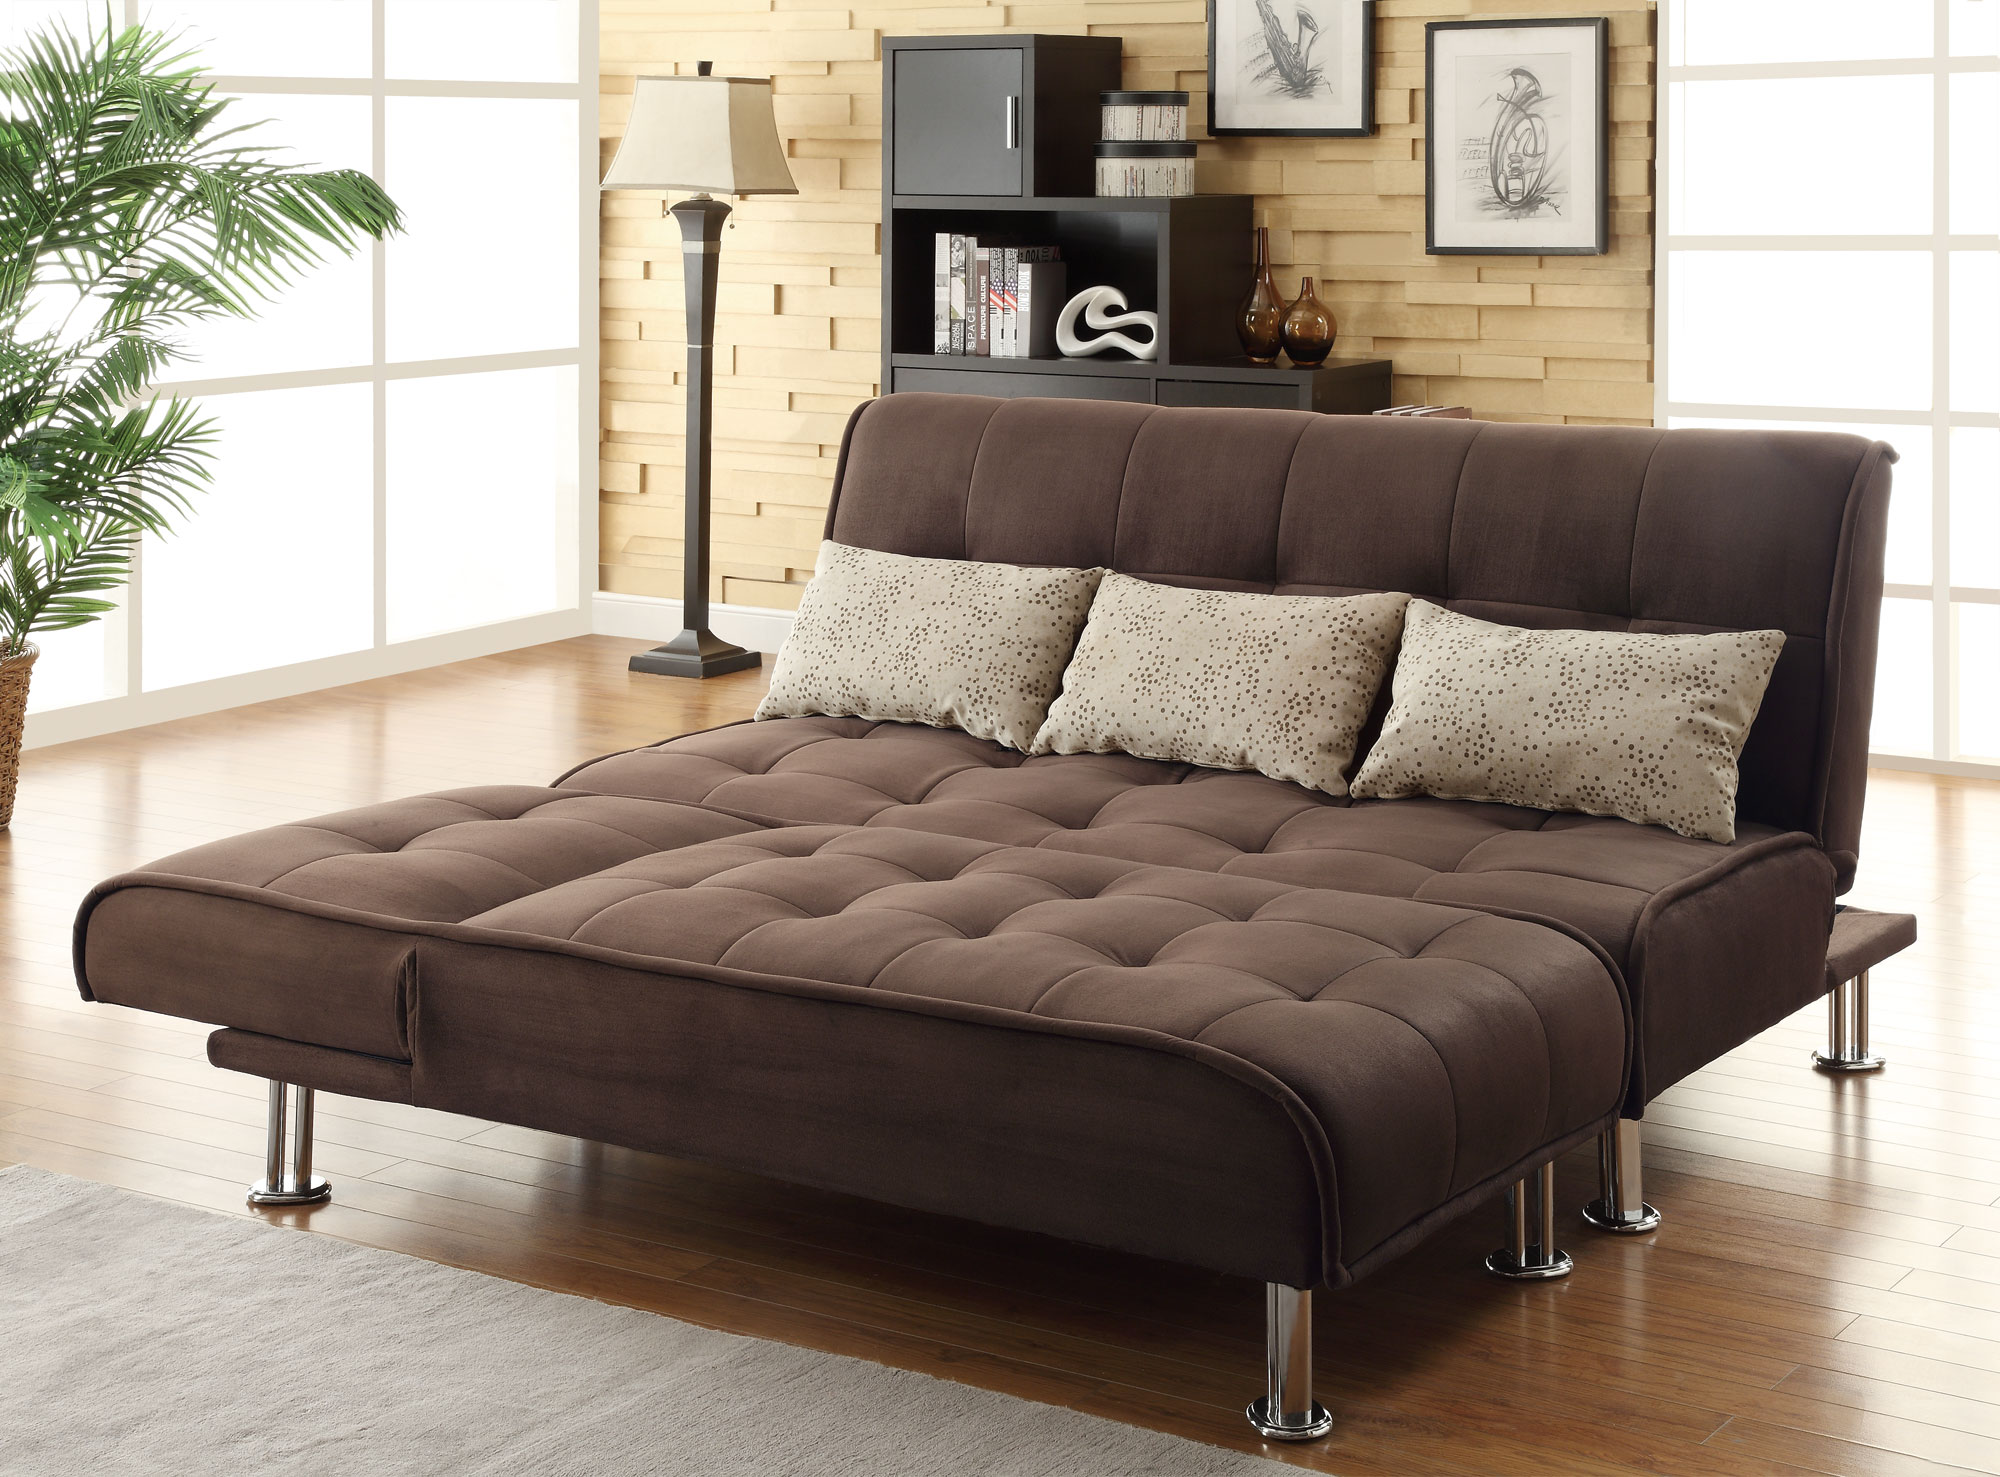 Bring some traditions home with futon beds